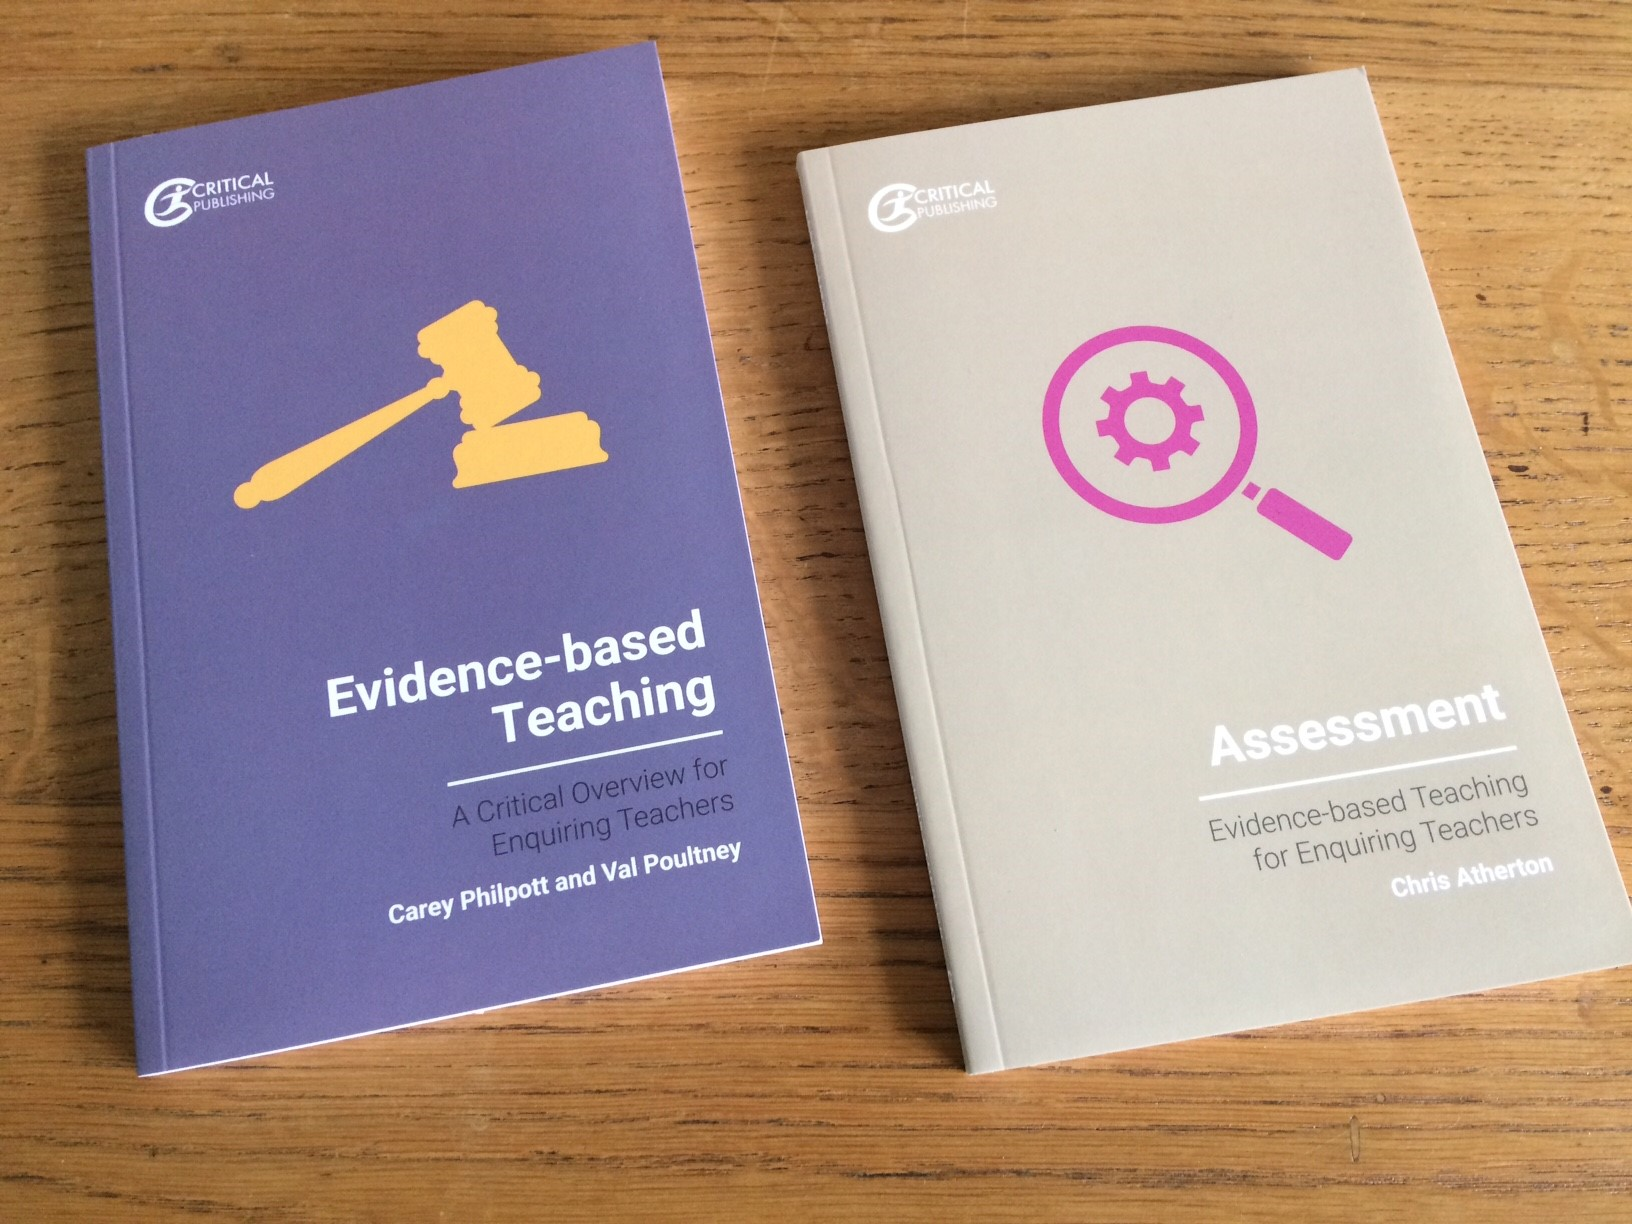 Evidence-based Teaching series